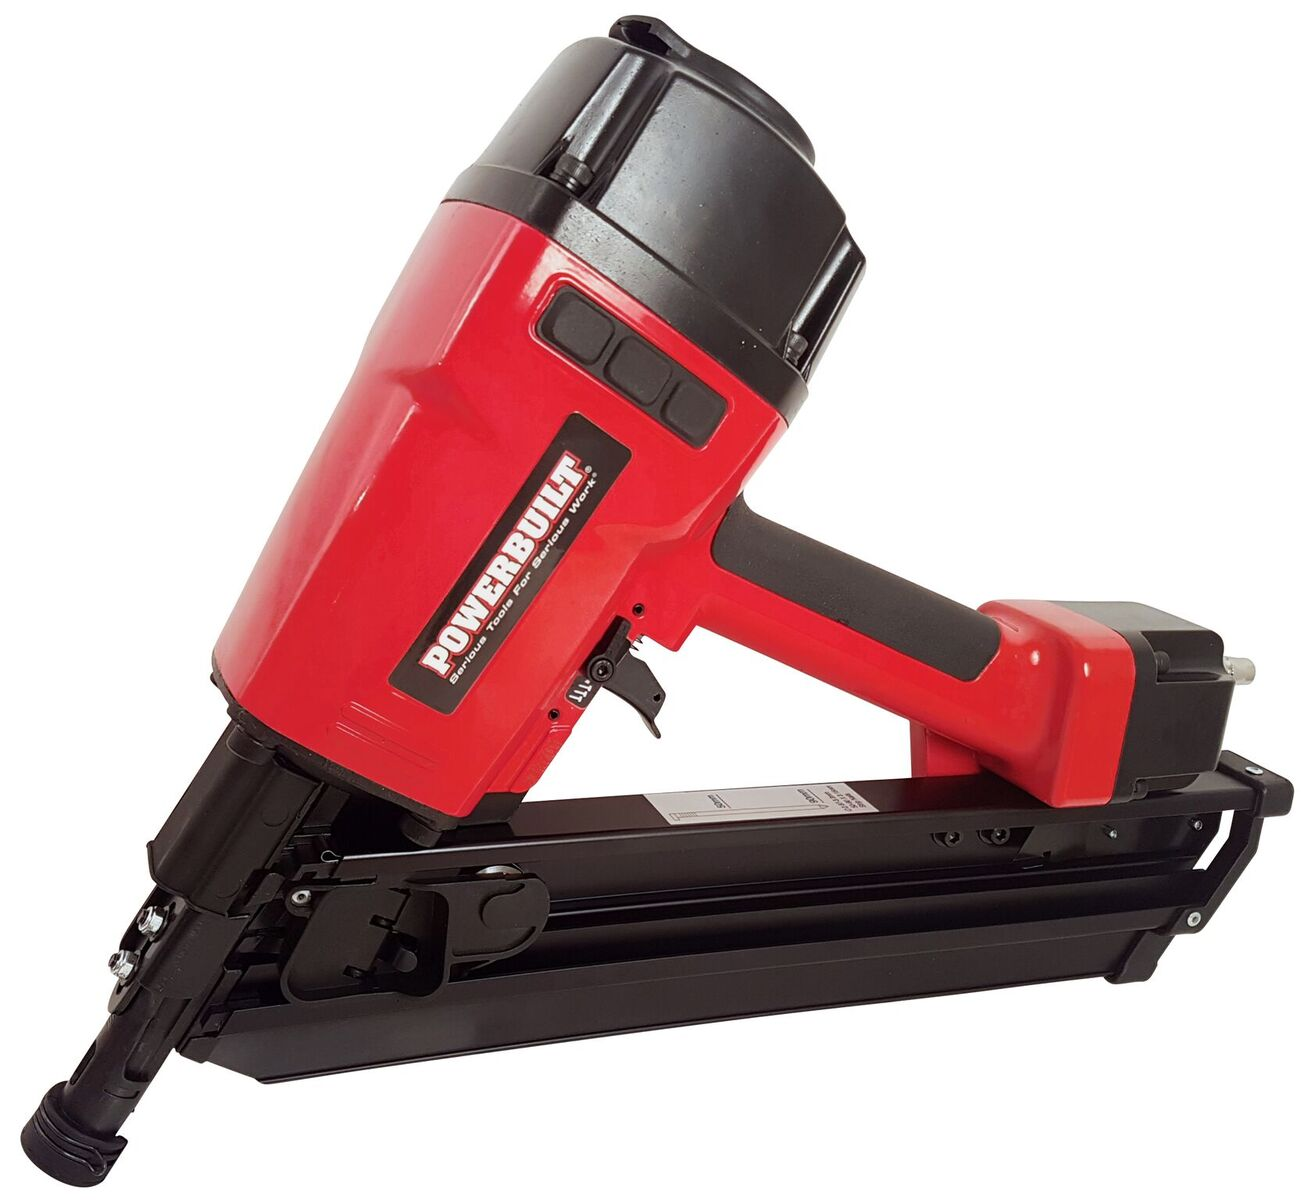 34 DEGREE CLIPPED HEAD FRAMING NAILER